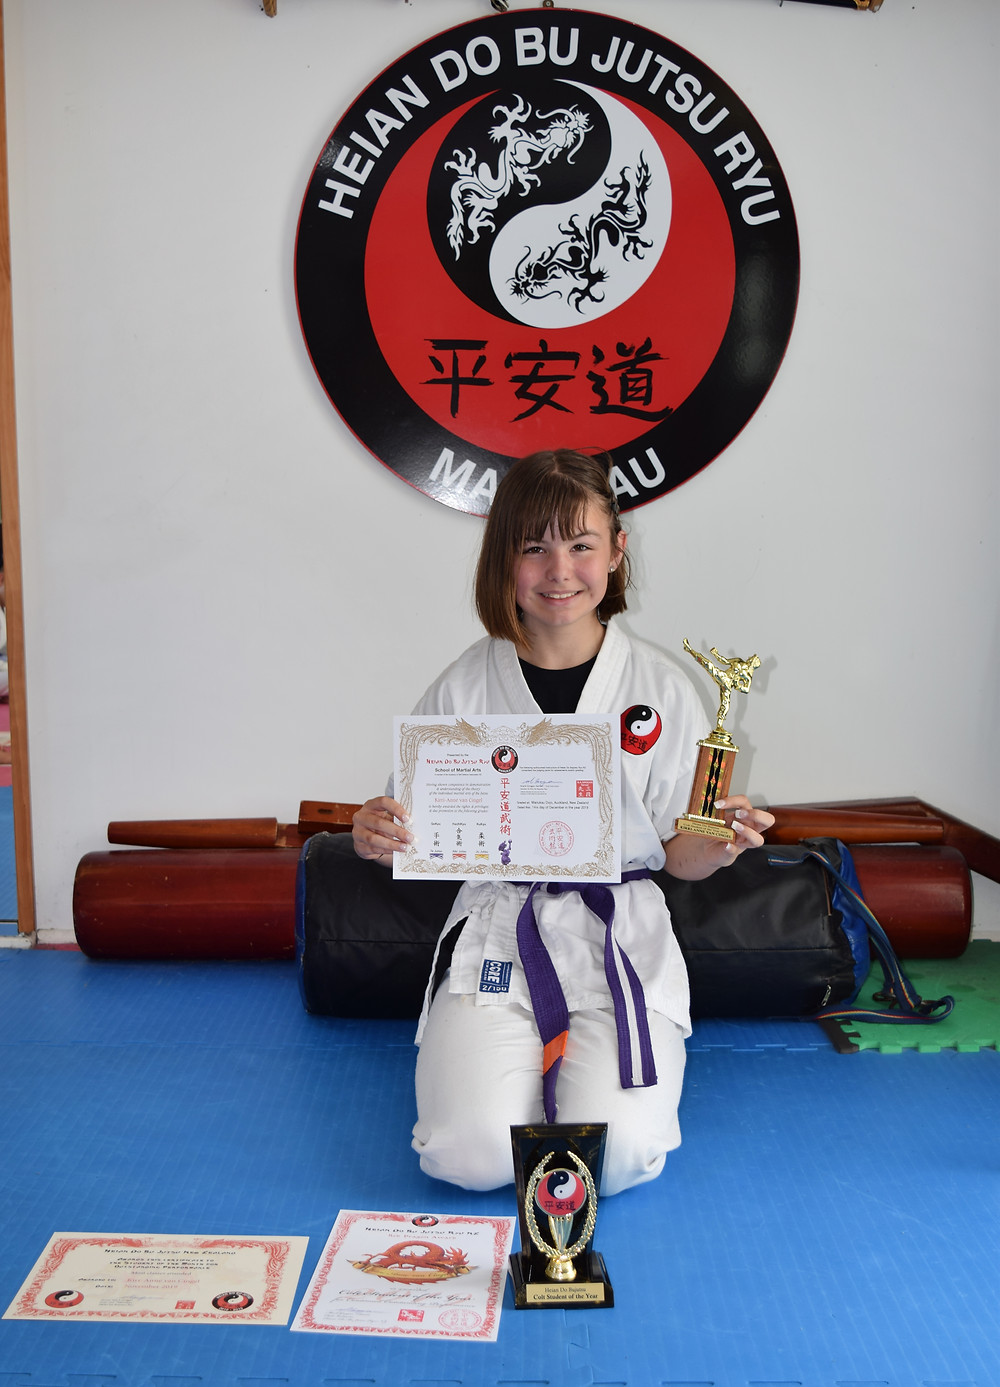 Kirri-Anne van Cingel earned Colt Student of the Year and also promoted to orange belt in Aiki Jutsu and yellow belt in Ju Jutsu